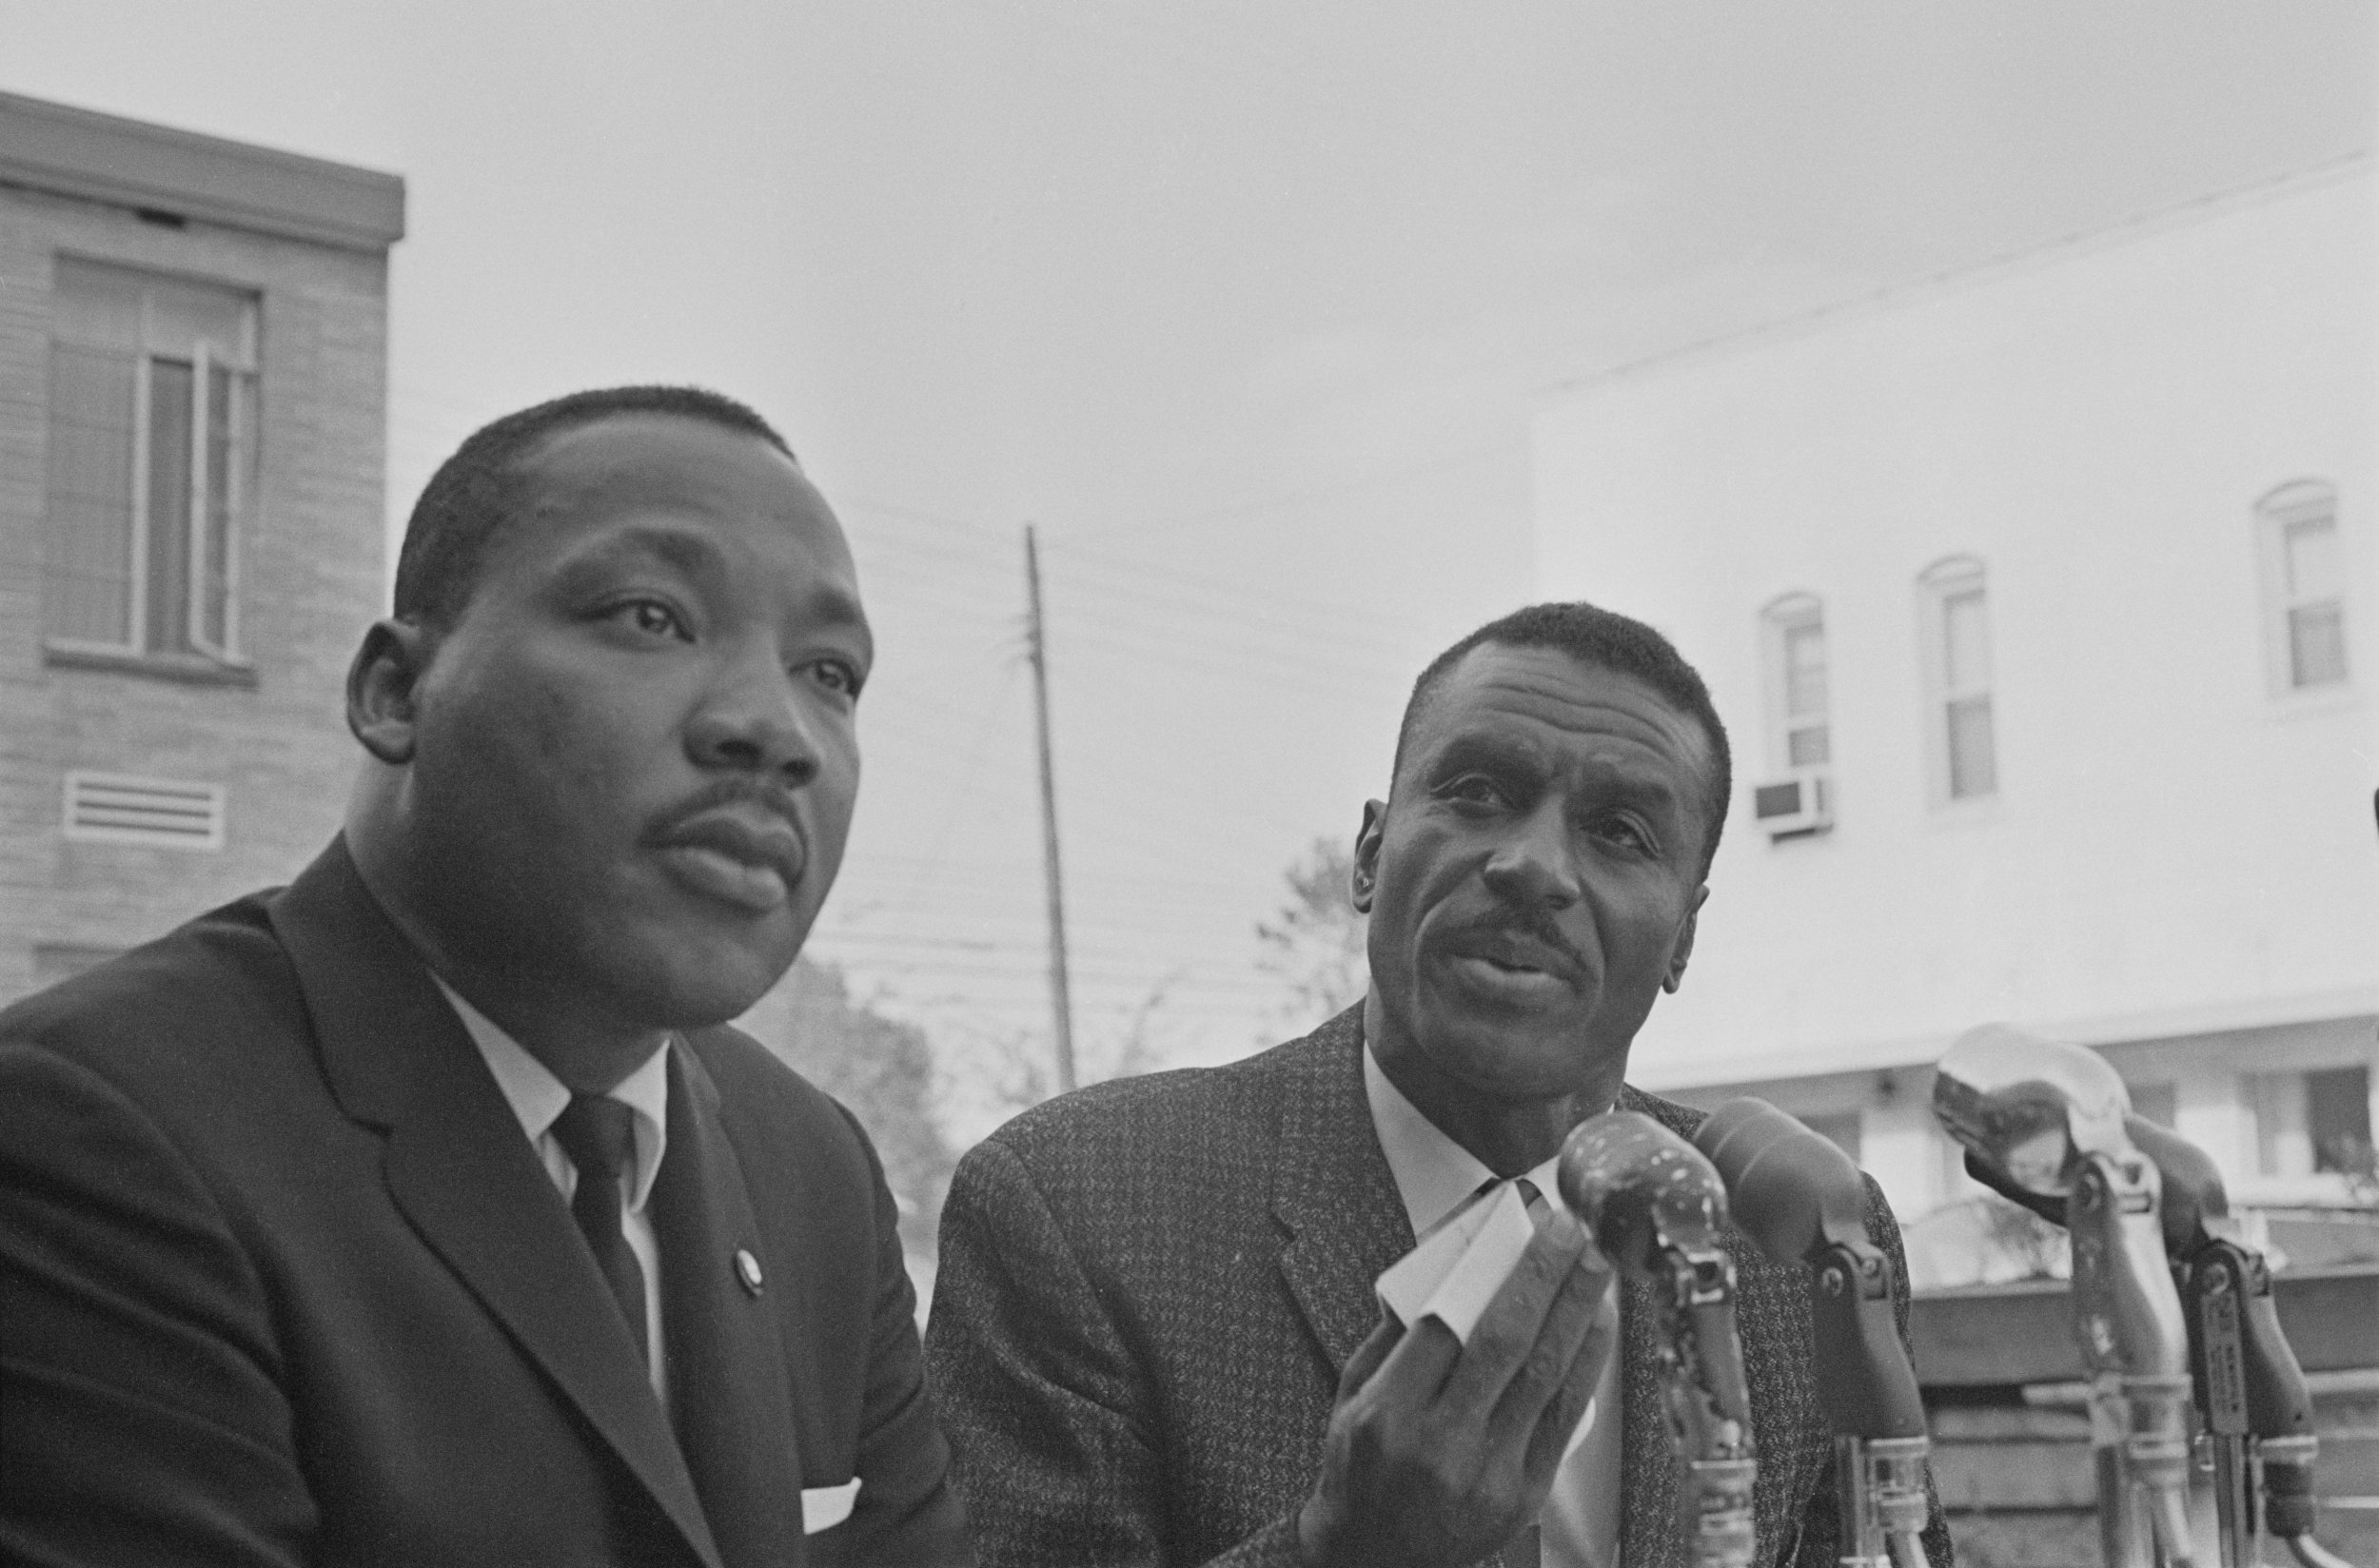 Martin Luther King Jr Day Facts Where Was He Born When It Became A Federal Holiday